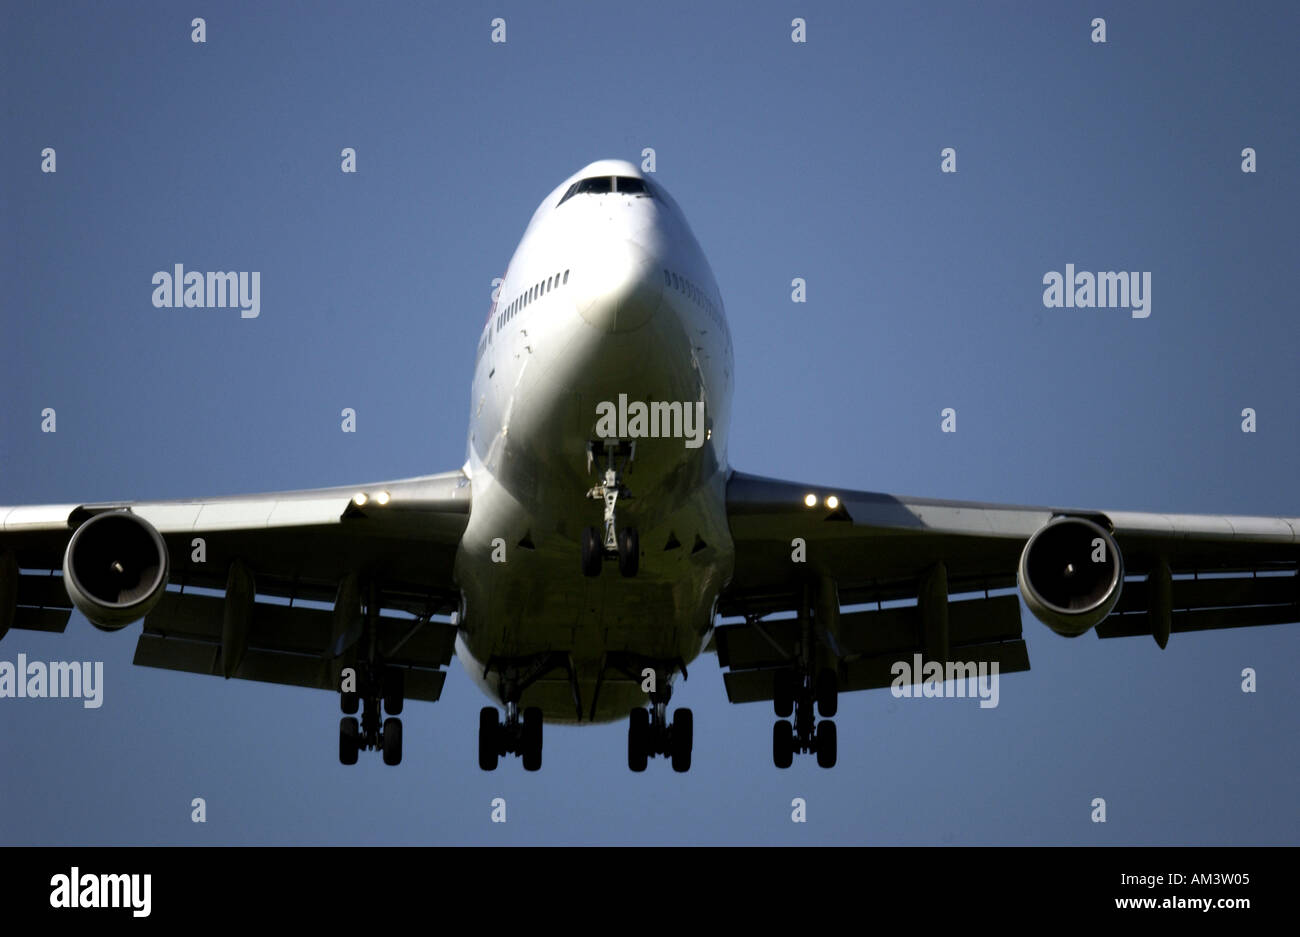 A Virgin Atlantic Airways Boeing 747 Jumbo Jet comes into land at London Gatwick Airport - Stock Image